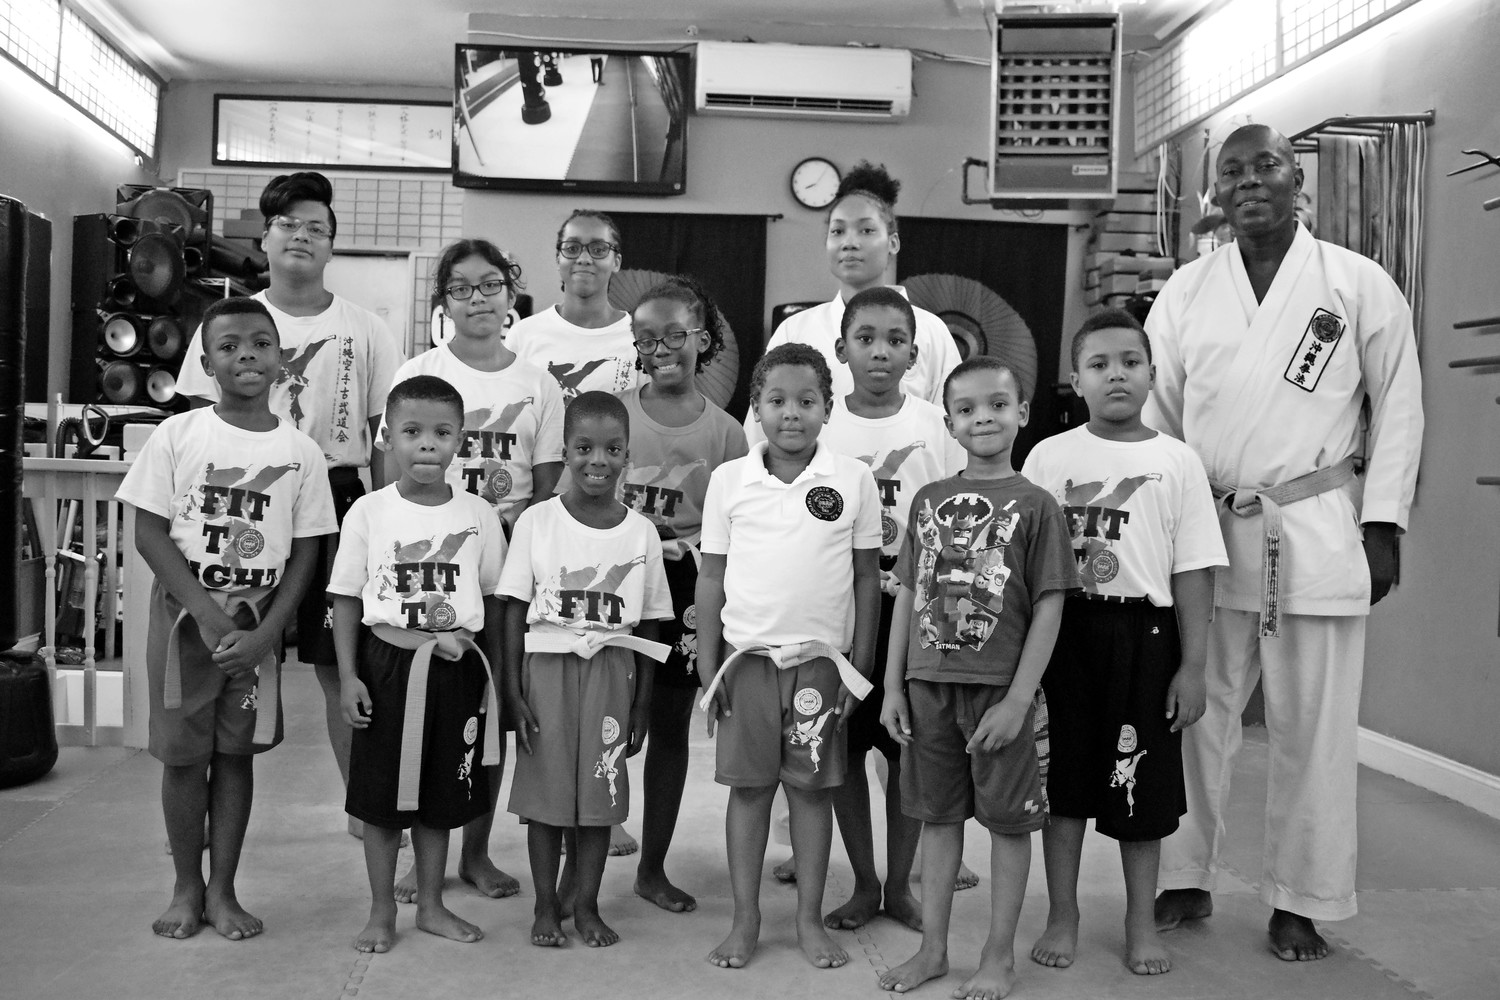 Okinawa Karate Kobudo Kai founder Serge Clark, right, teaches martial arts to children, teens and adults at his dojo on Dutch Broadway. His daughter, Joiyeux Clark, to his right, began working as an instructor at the dojo.